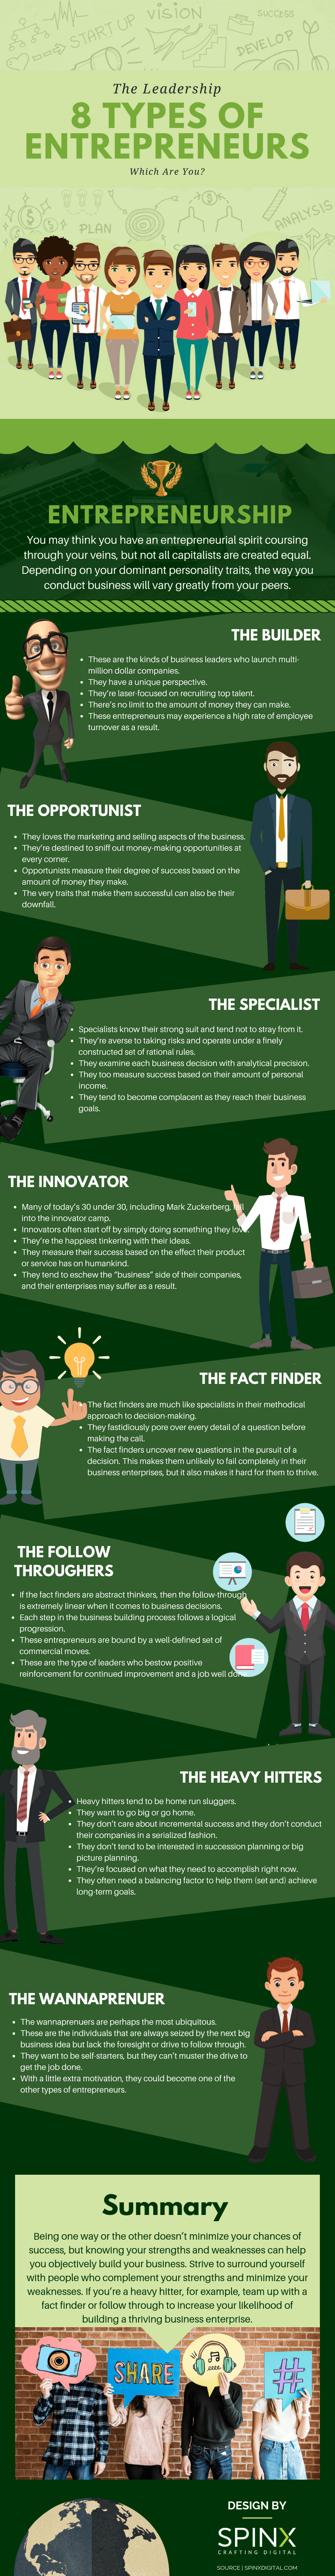 8 types of entrepreneurs infographic